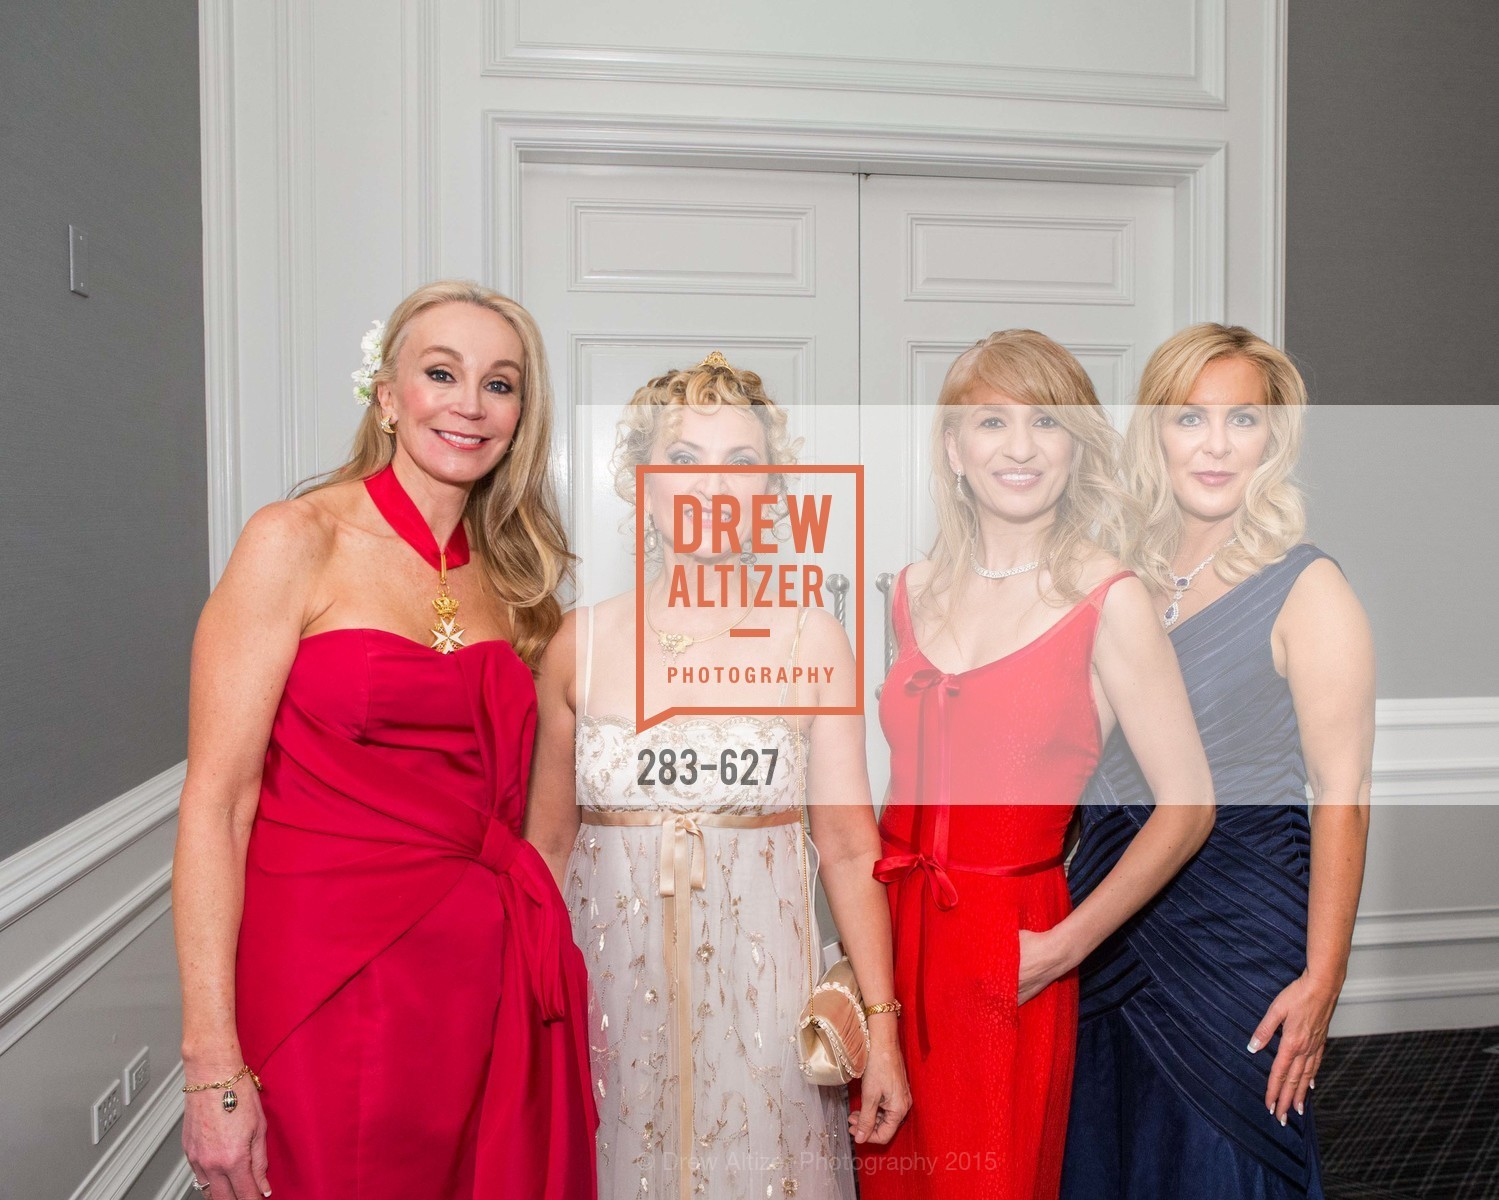 Giselle Anna Parry, Yuliya Voroninskaya, Navid Armstrong, Michelle Rose, Sovereign Order Of St John of Jerusalem Knights Hospitaller Gala, Ritz Carlton San Francisco, December 5th, 2015,Drew Altizer, Drew Altizer Photography, full-service agency, private events, San Francisco photographer, photographer california